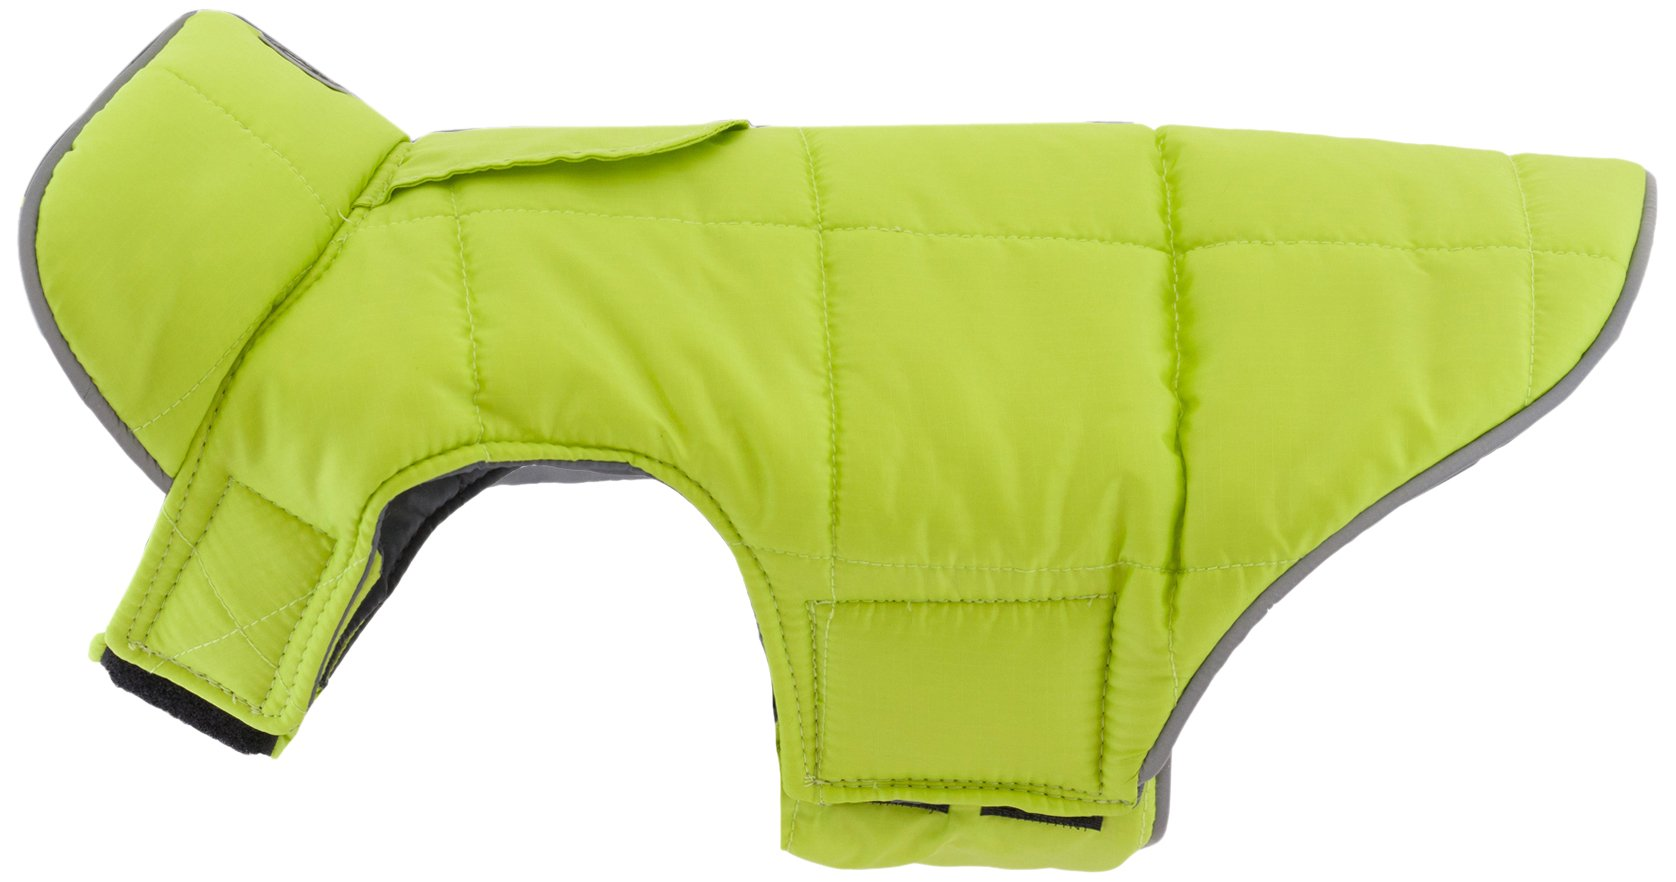 RC Pet Products Skyline Puffy Vest, Reflective, Water-Repellent, Reversible Dog Coat, Size 26, Lime/Charcoal